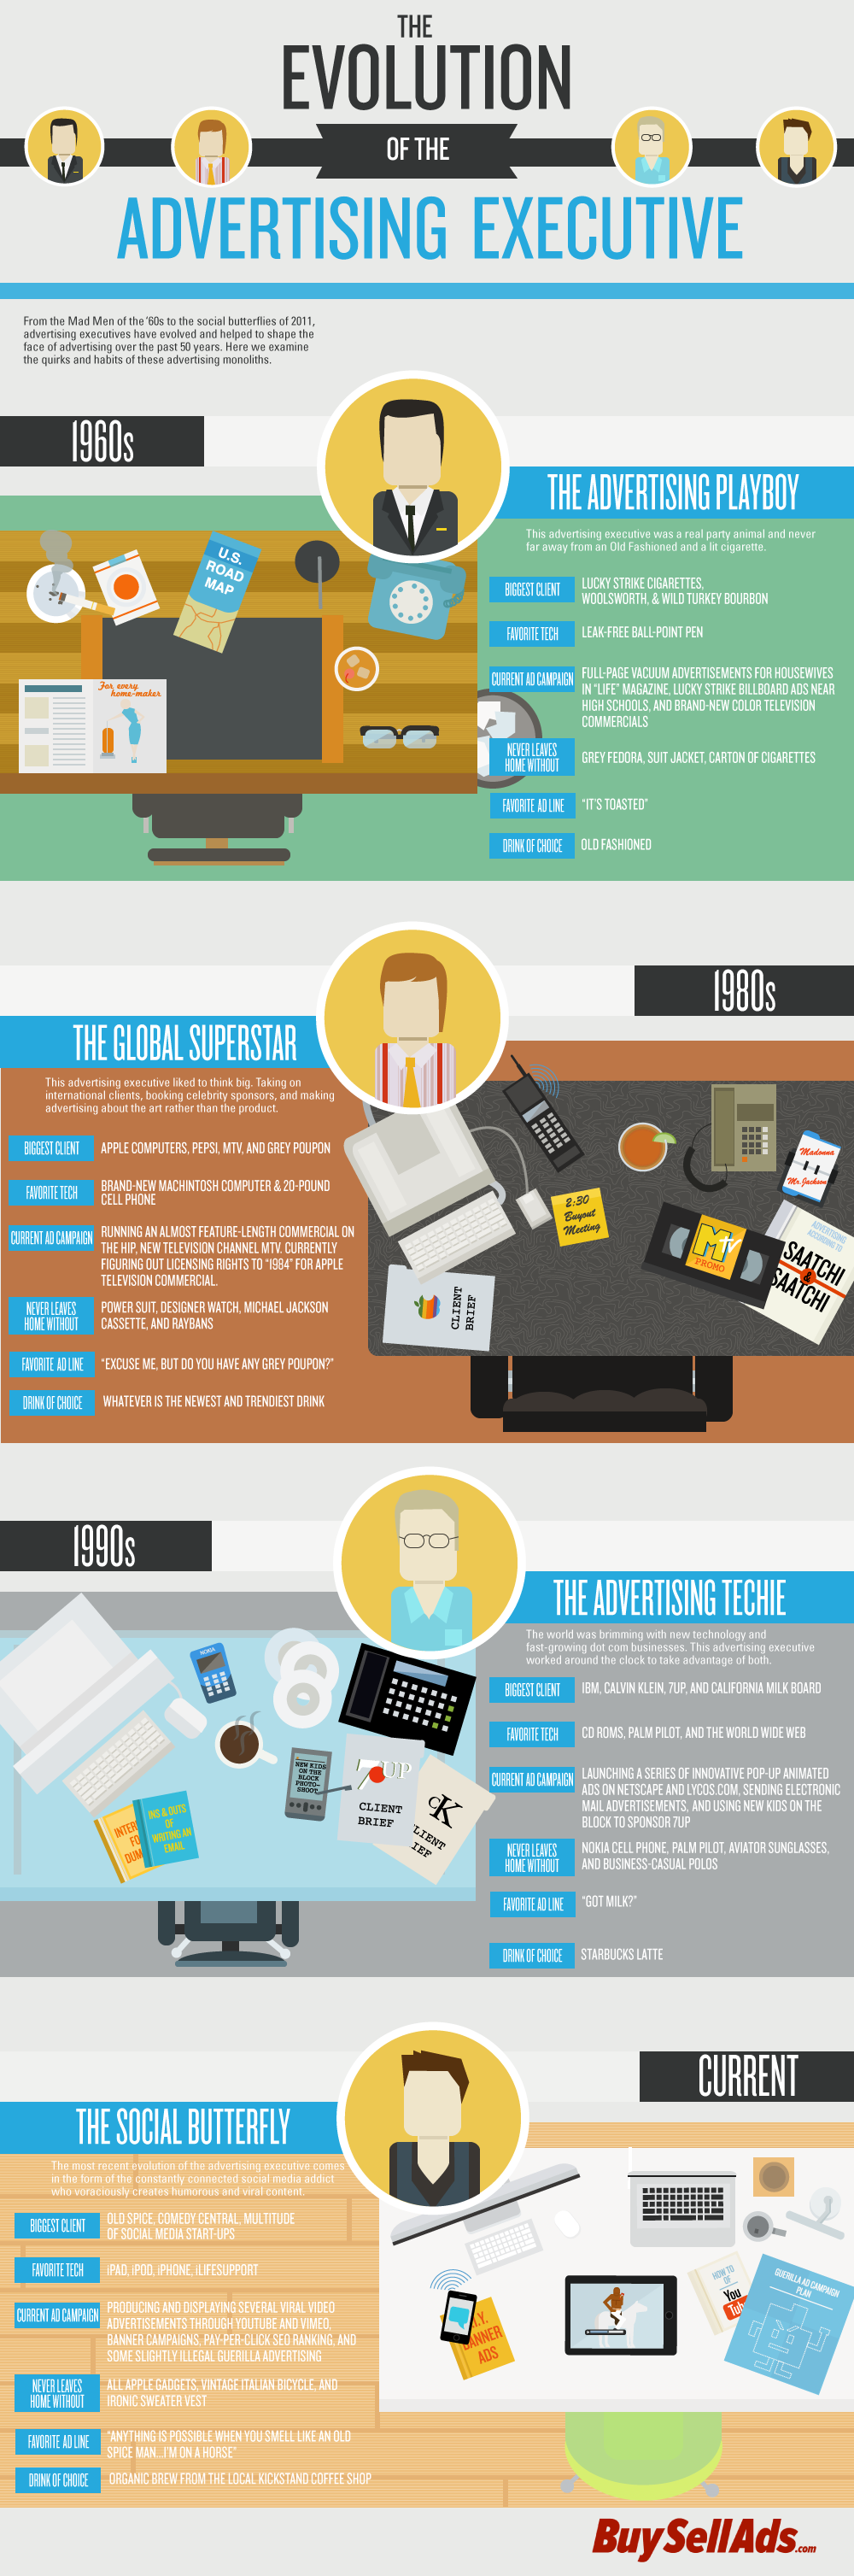 The Evolution of the Ad Executive | Visual.ly